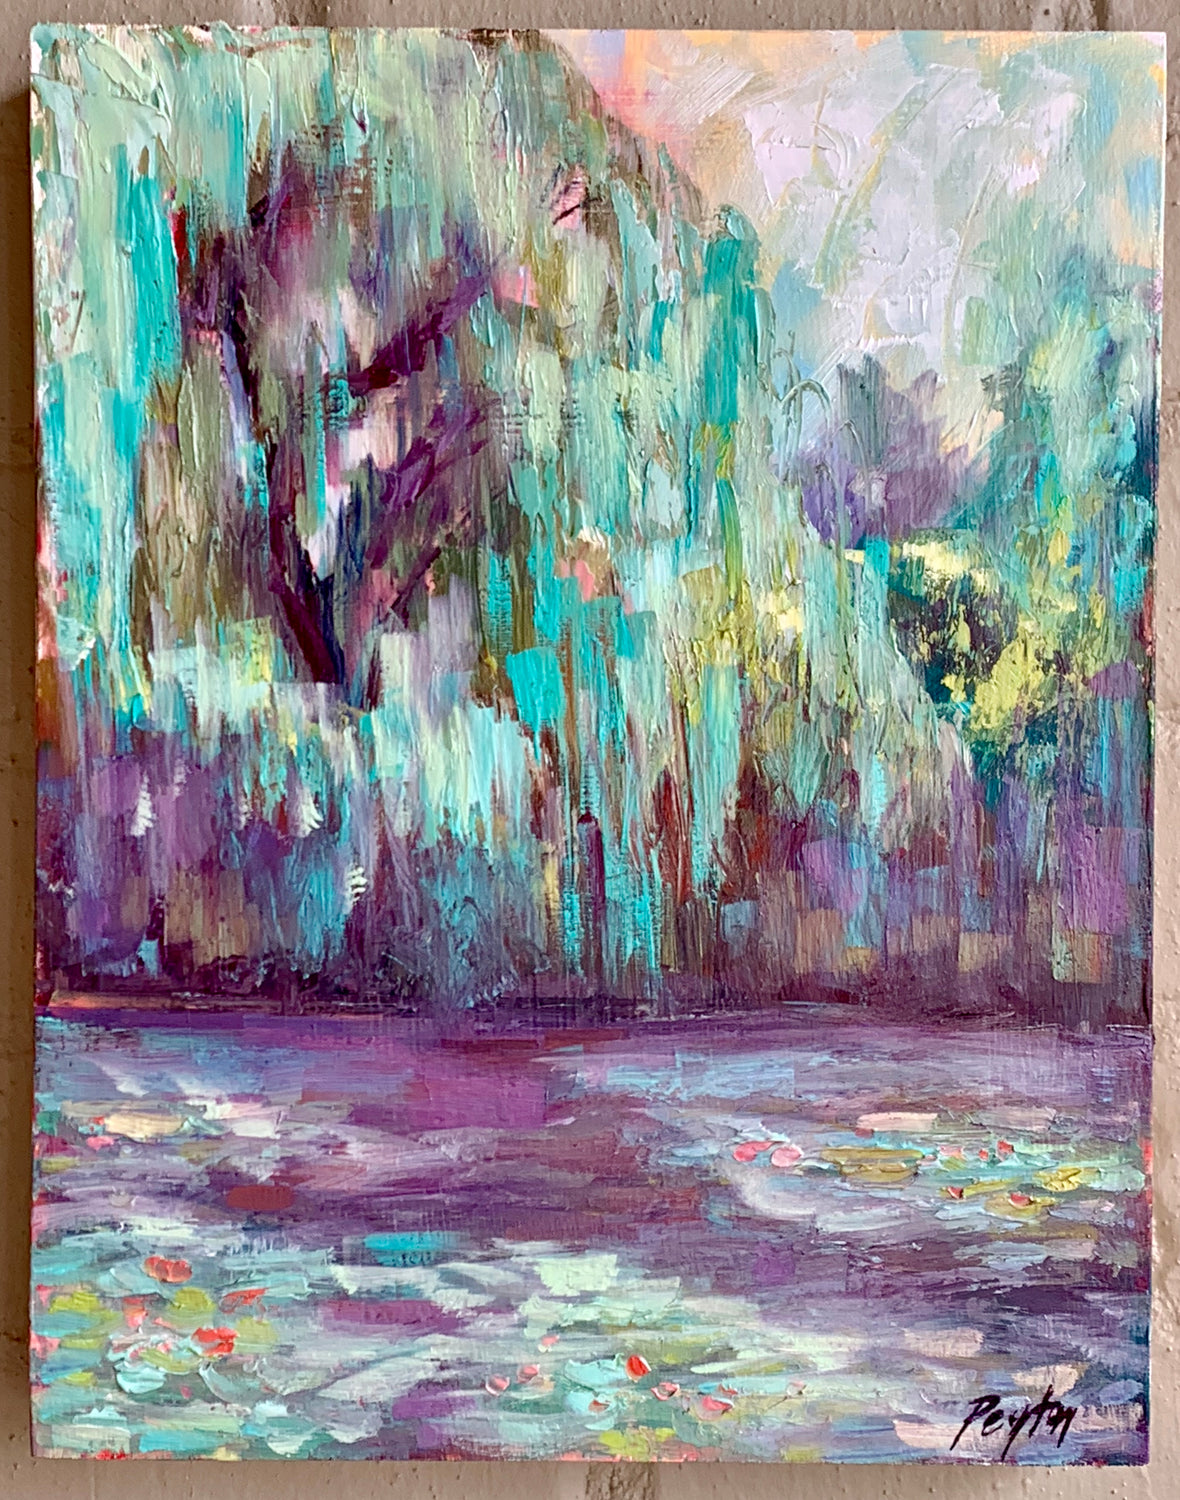 Monet's Willow Trees, Size 14 x 11